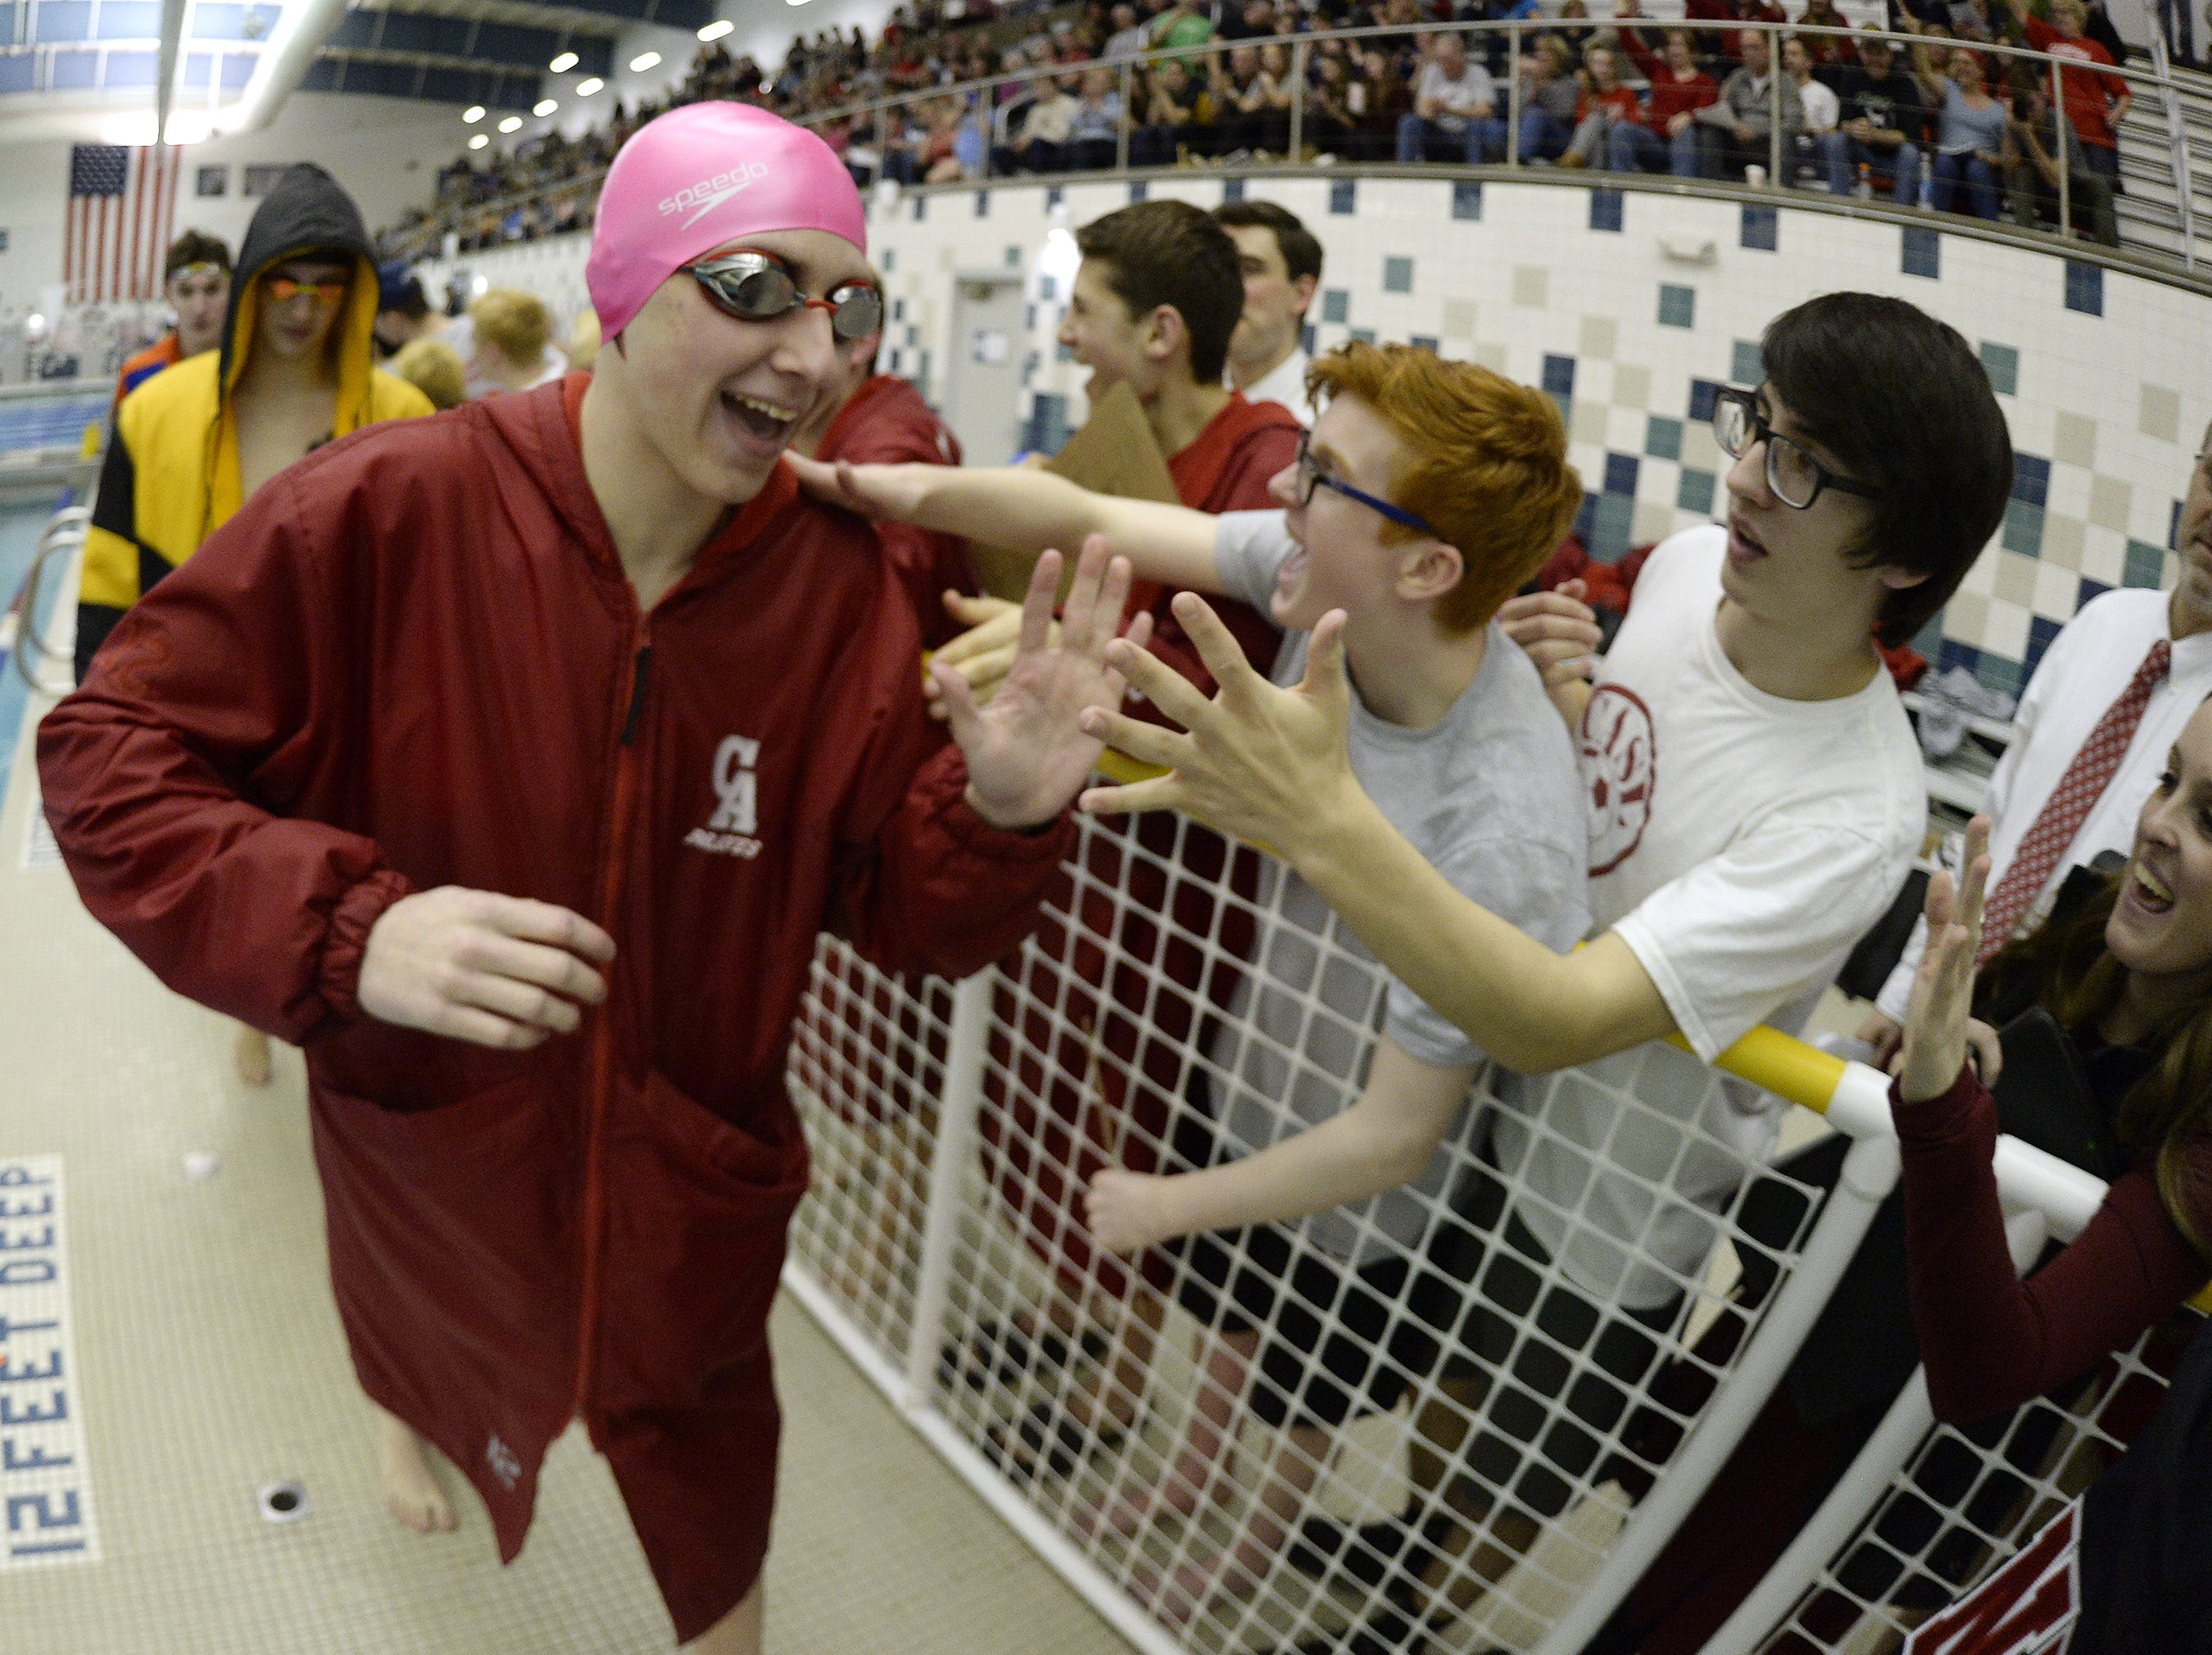 Canandaigua's Hayden Bement is cheered on by teammates on his way to swim in the final of the 100 yard freestyle during the Section V Class B Swimming & Diving Championships at the Webster Aquatic Center, Friday, Feb. 15, 2019.